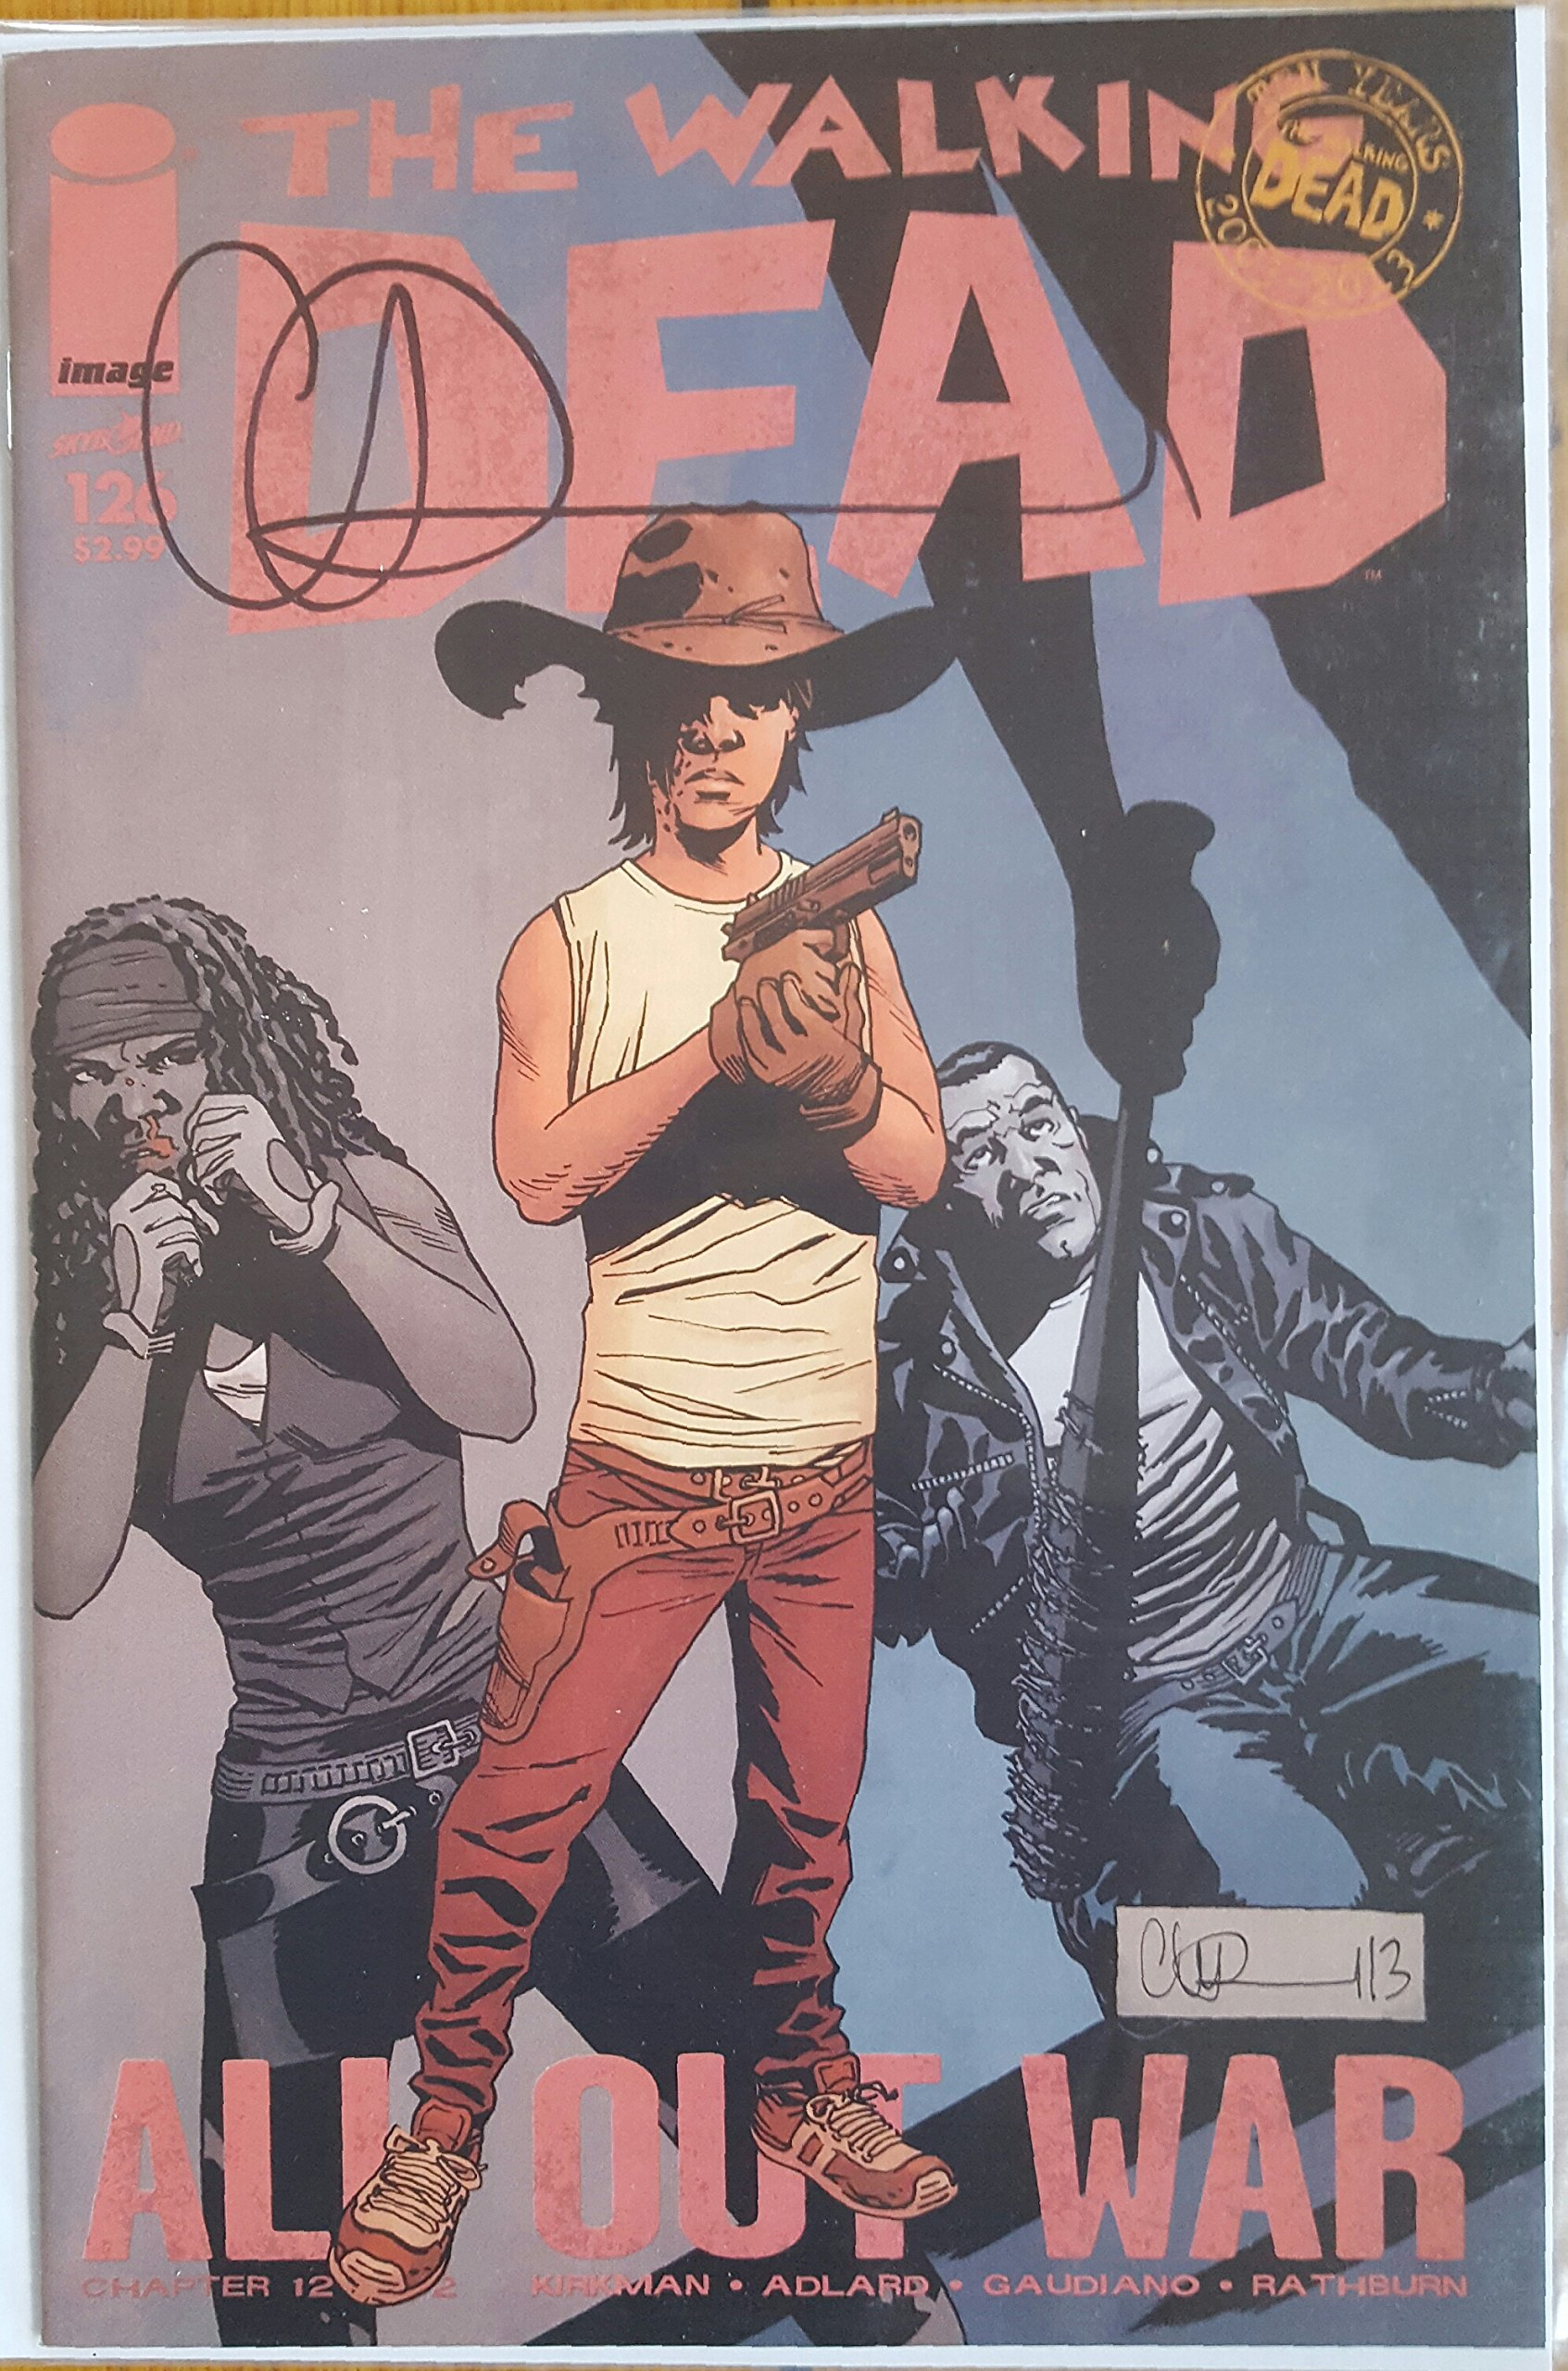 The Walking Dead (2013 Image Comics) Issue #126 NM/NM+ Signed by Artist Charlie Adlard with Certificate of Authenticity (COA) pdf epub